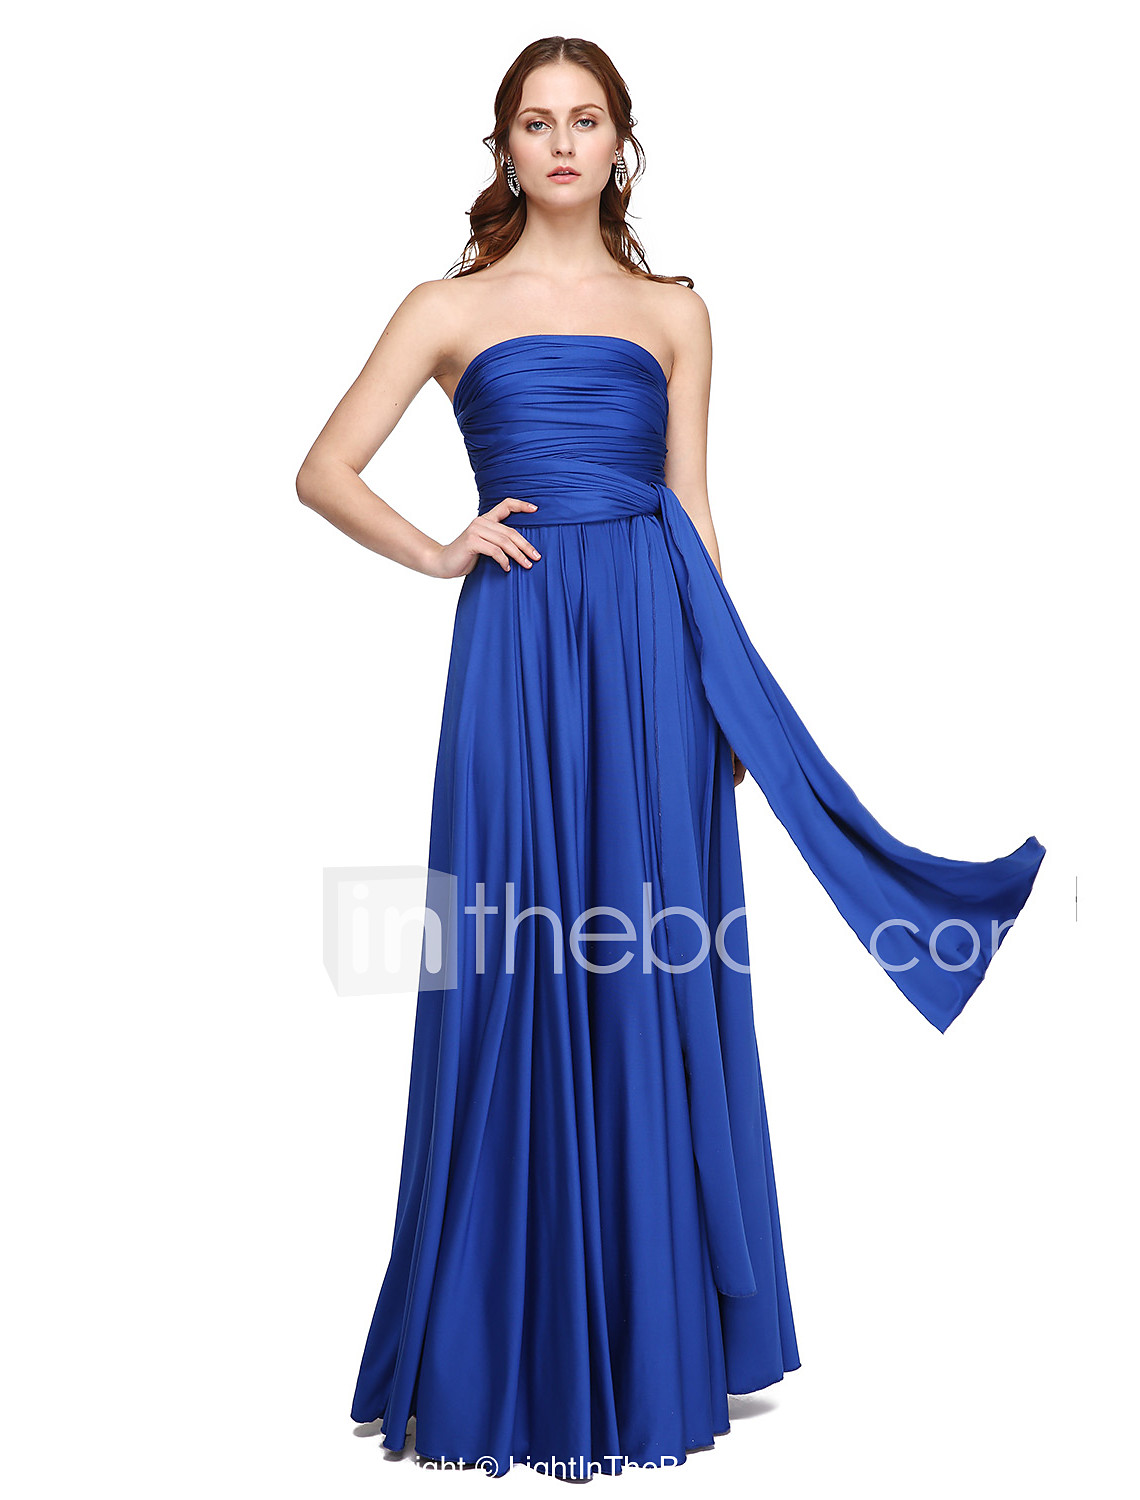 And ice silver bridesmaid dress if it was navy blue and ice silver - A Line Strapless One Shoulder V Neck Floor Length Jersey Bridesmaid Dress With Pleats